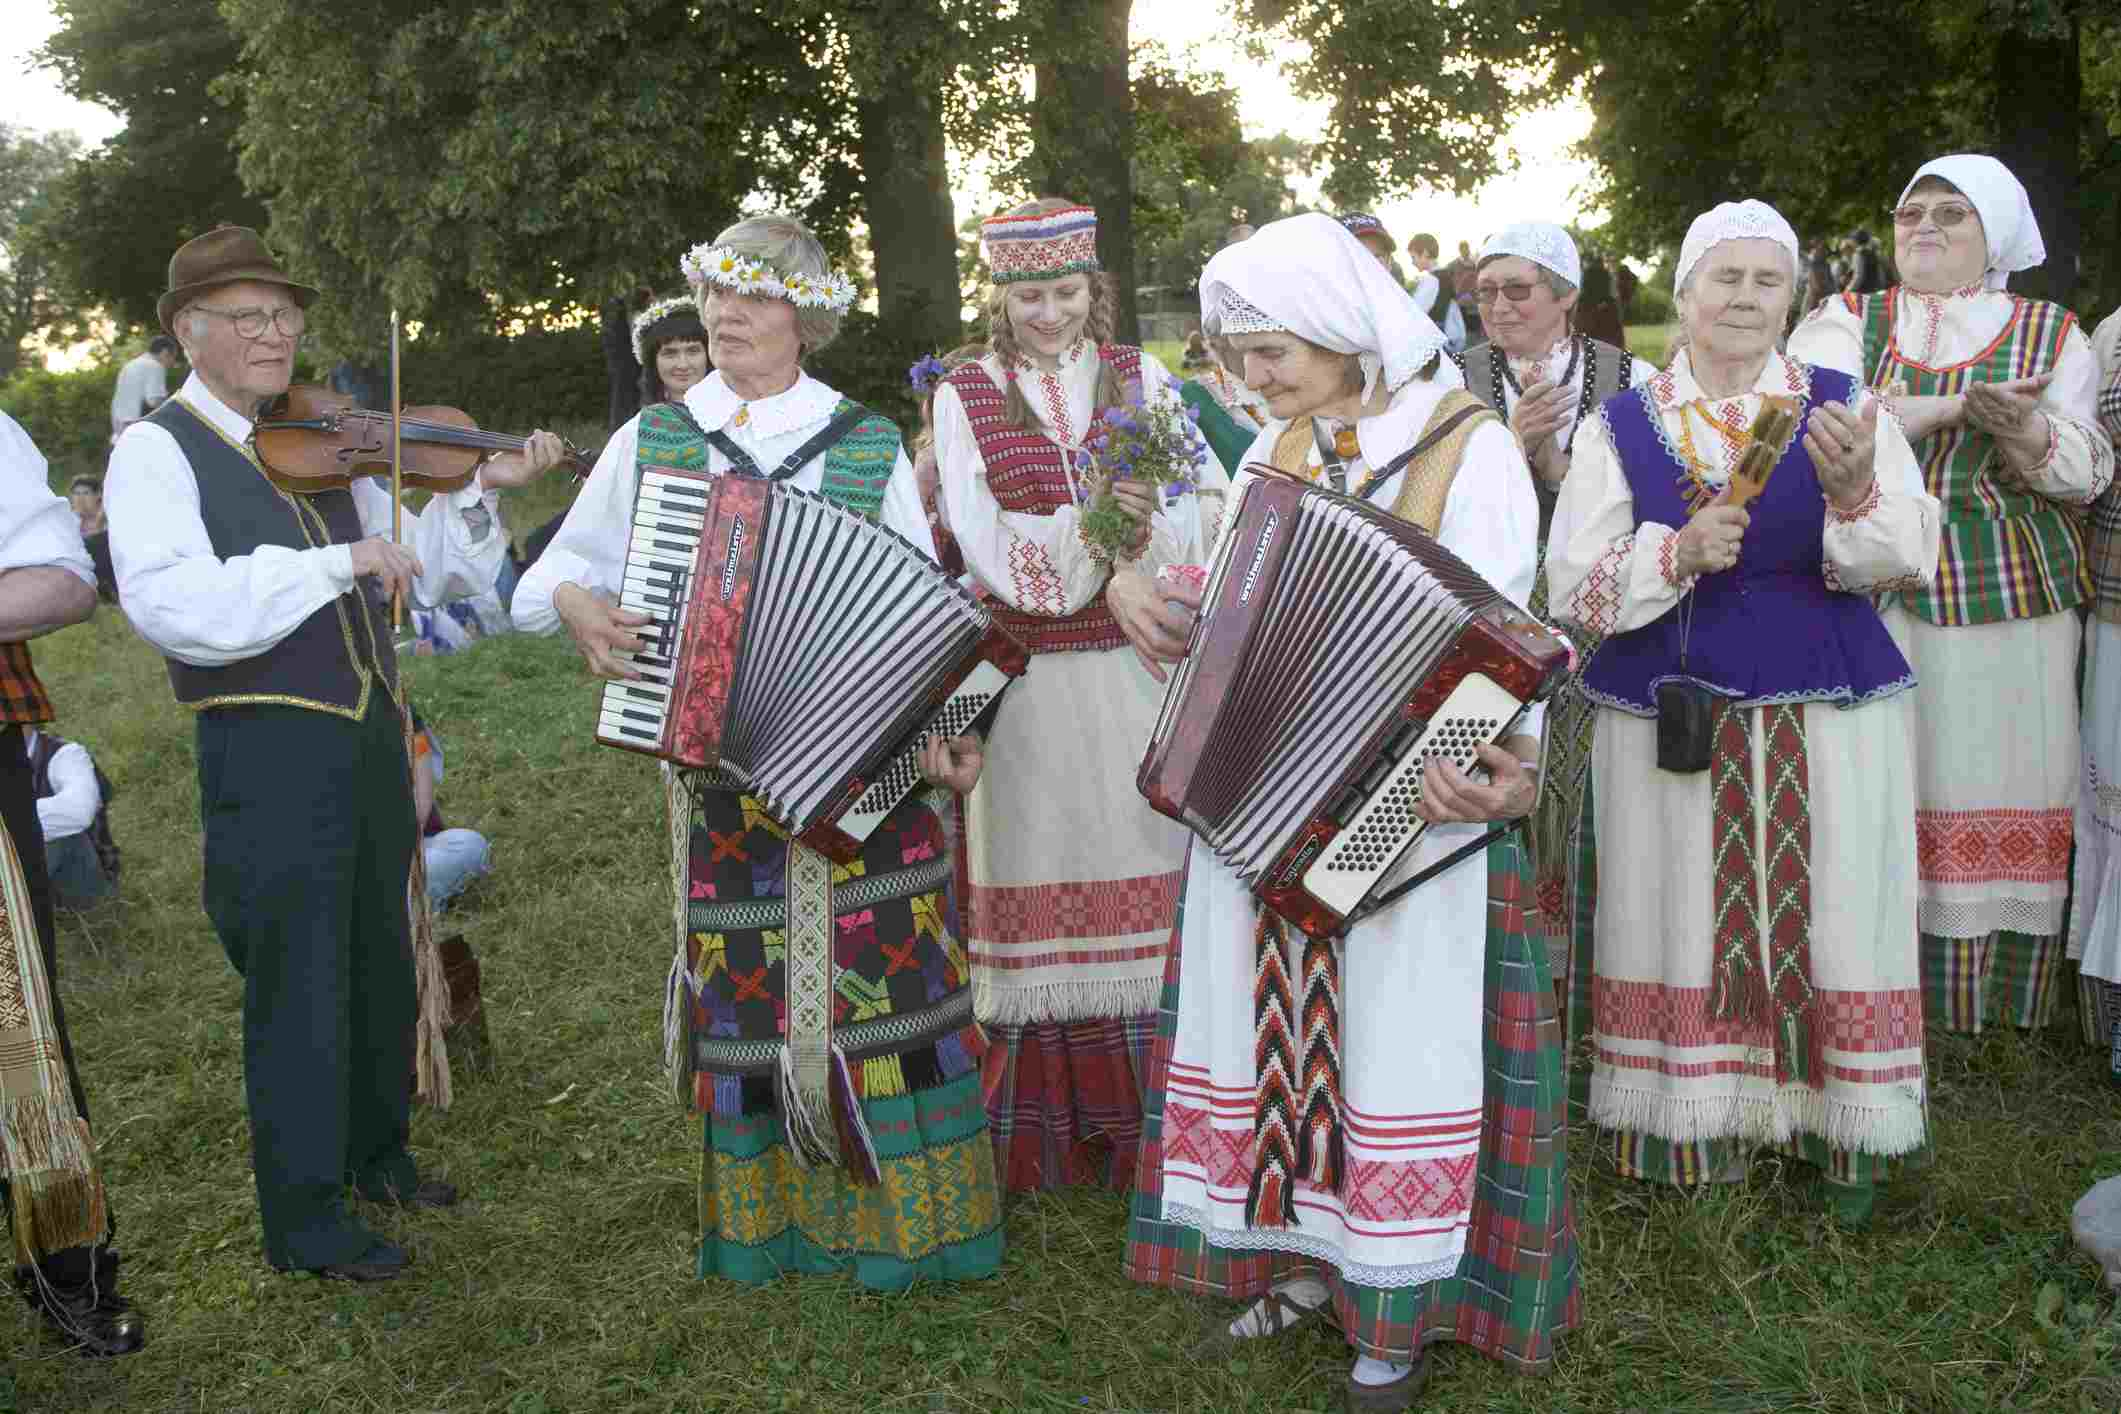 Men and woman in traditional dress playing instruments at the Midsummer's Day Celebration